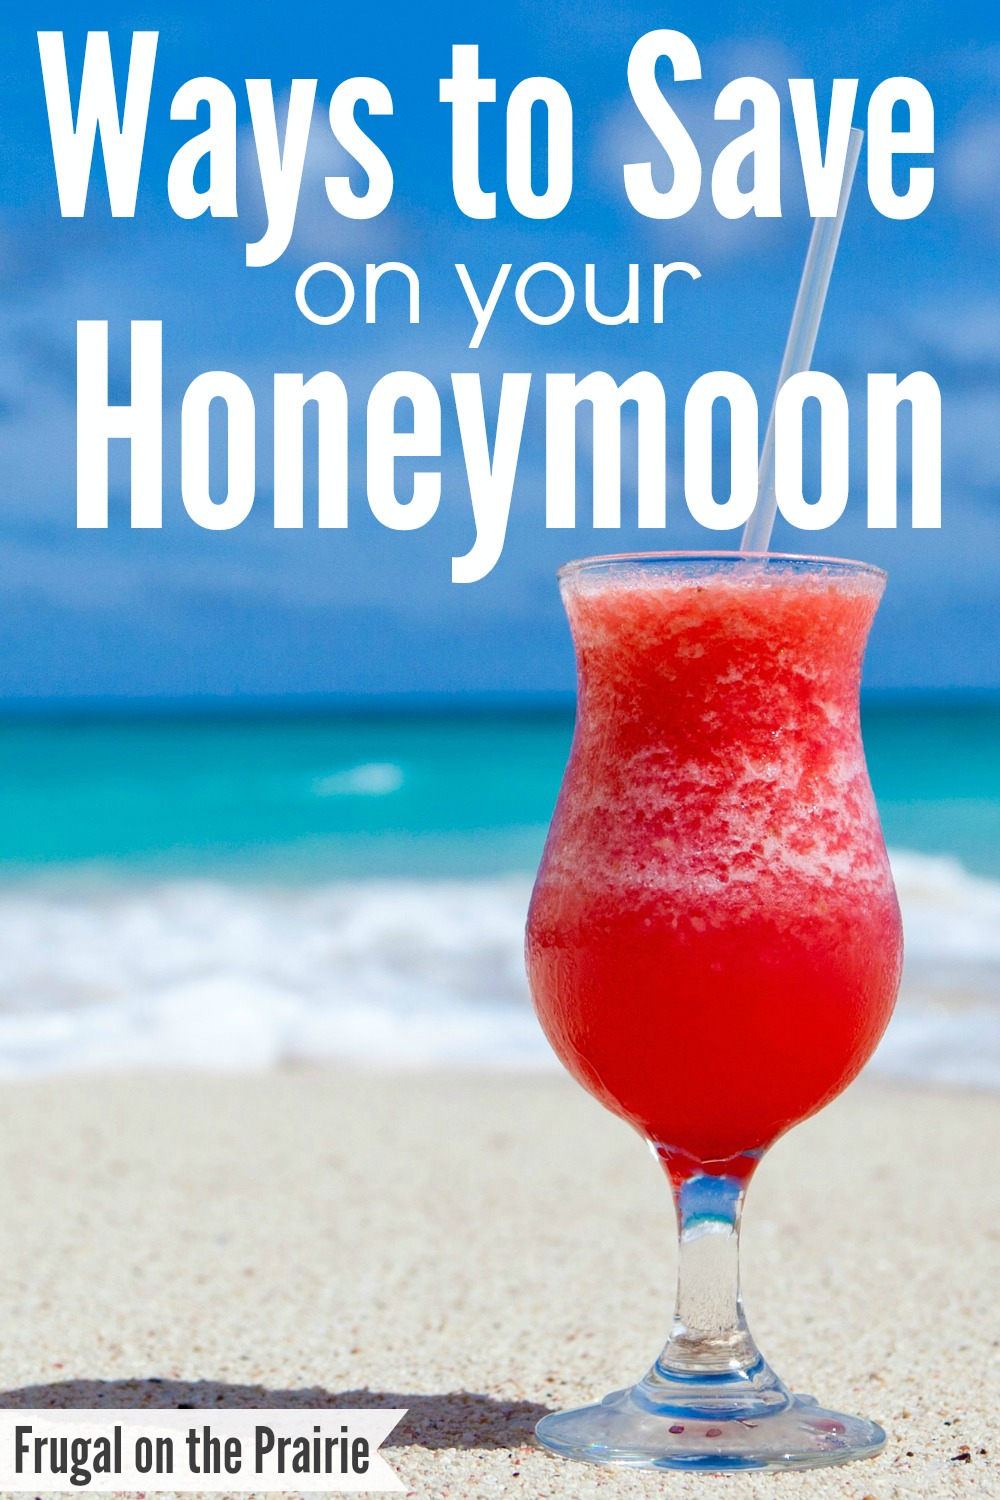 Looking for ways to save on your honeymoon? Here are 8 easy tricks for saving cash while still enjoying your romantic getaway!